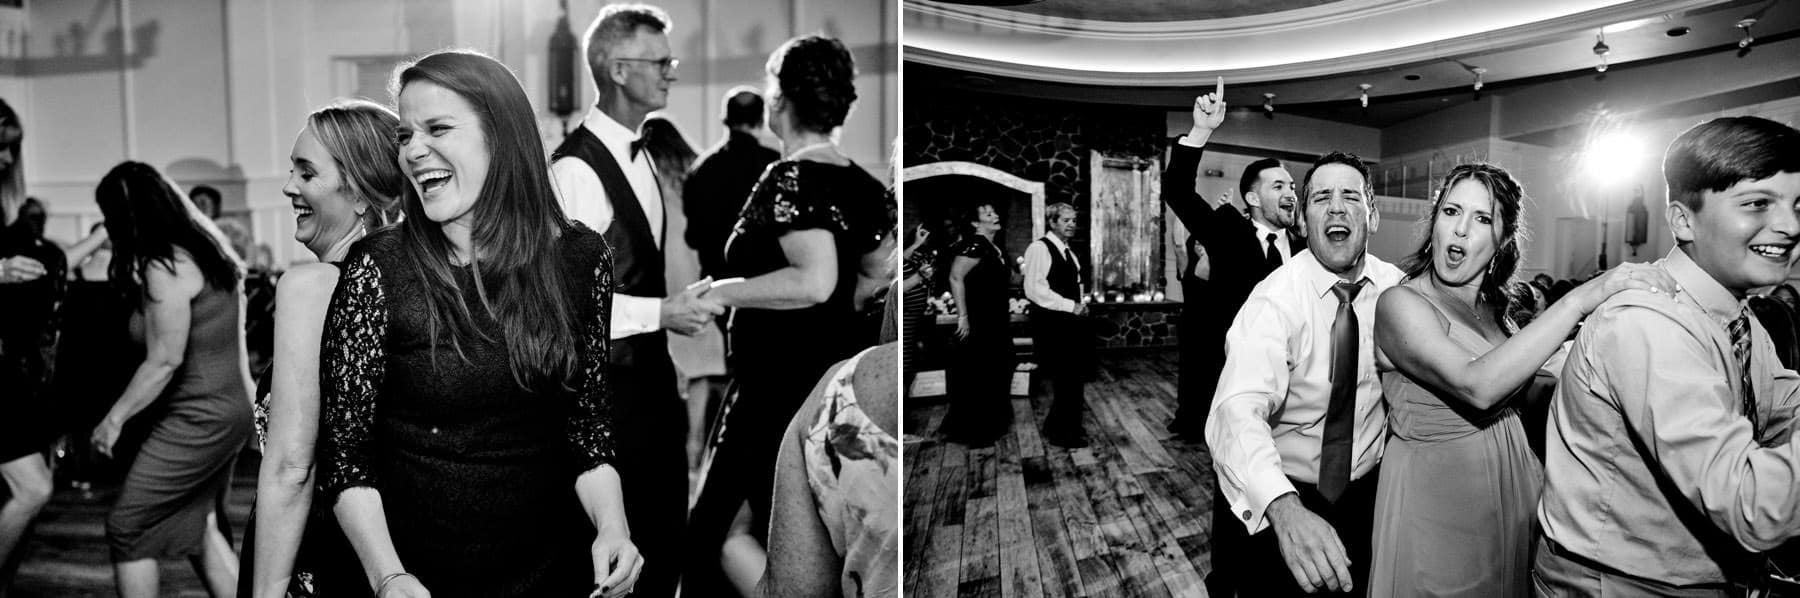 wedding guests dancing at The Farmhouse